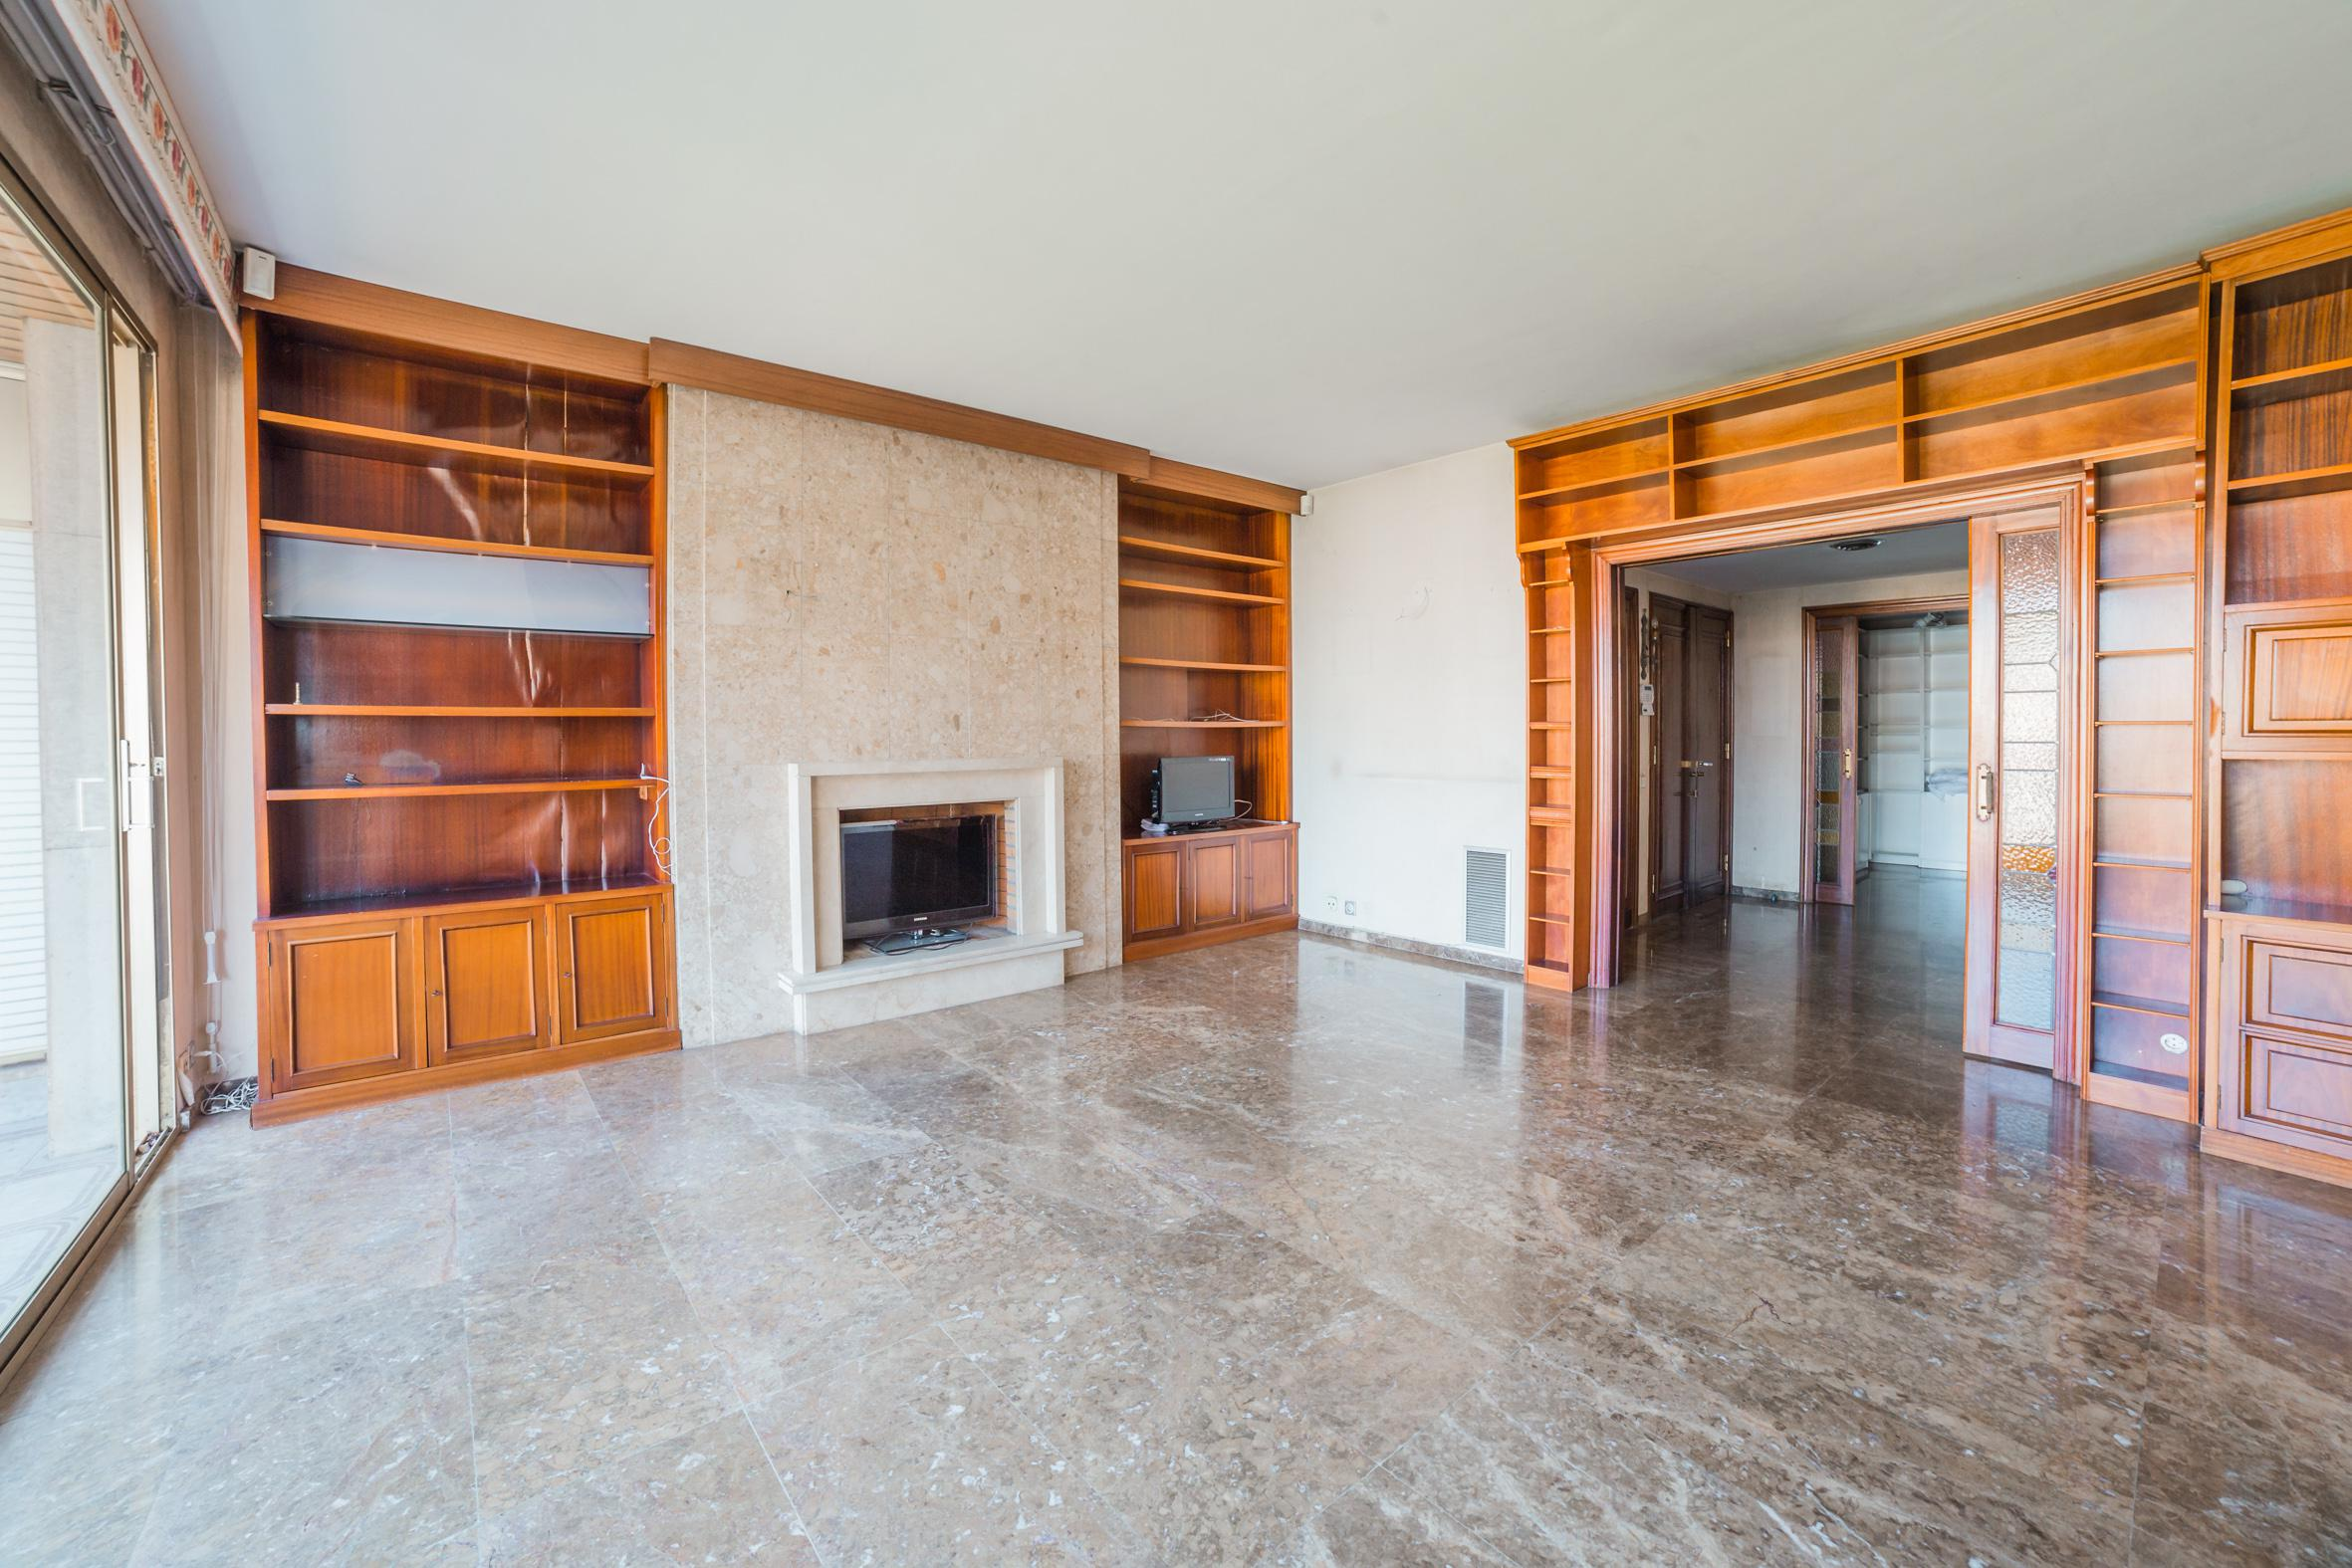 248988 Flat for sale in Les Corts, Les Corts 2